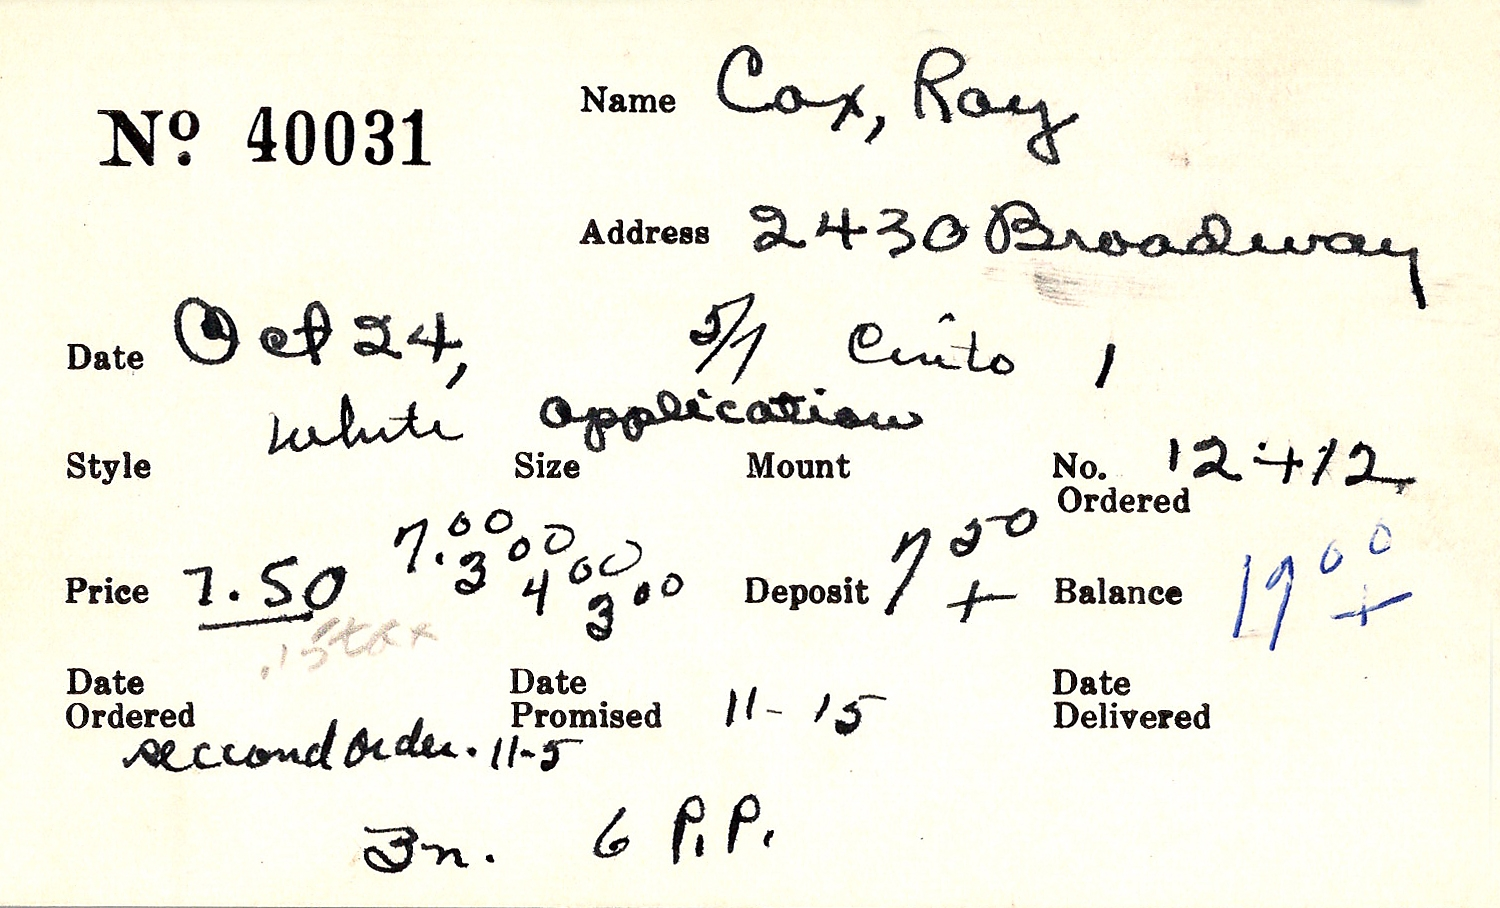 Index card for Roy Cox